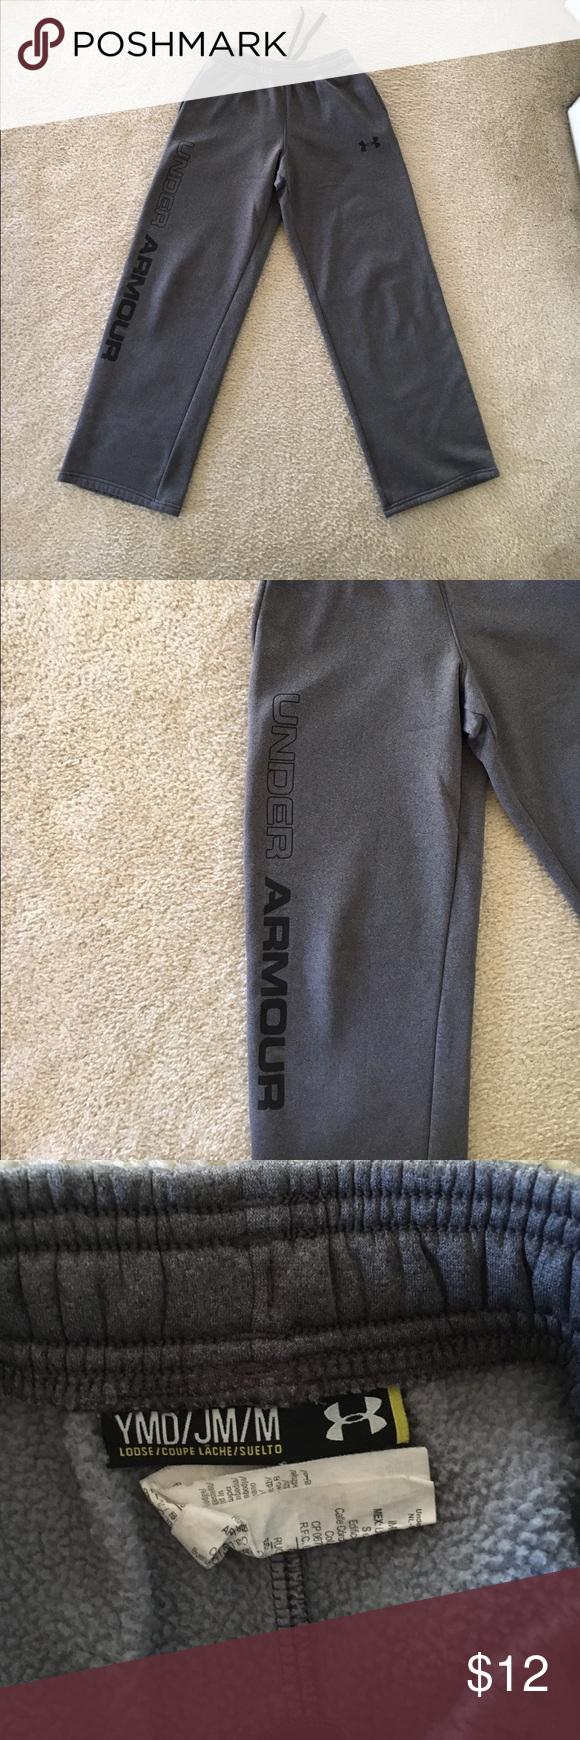 Under Armour sweatpants youth M Fleece lined Under  Armour  sweatpants. Inside shows balling of fleece from wash. There is a small mark on the front left leg. It looks like a pencil mark that may come out in the wash. Not sure.  ( as shown in pic) Otherwise outside is in perfect condition Side pockets elastic and drawstring waist. 26 inch inseam. Never dryer dried. Under Armour Bottoms Sweatpants & Joggers